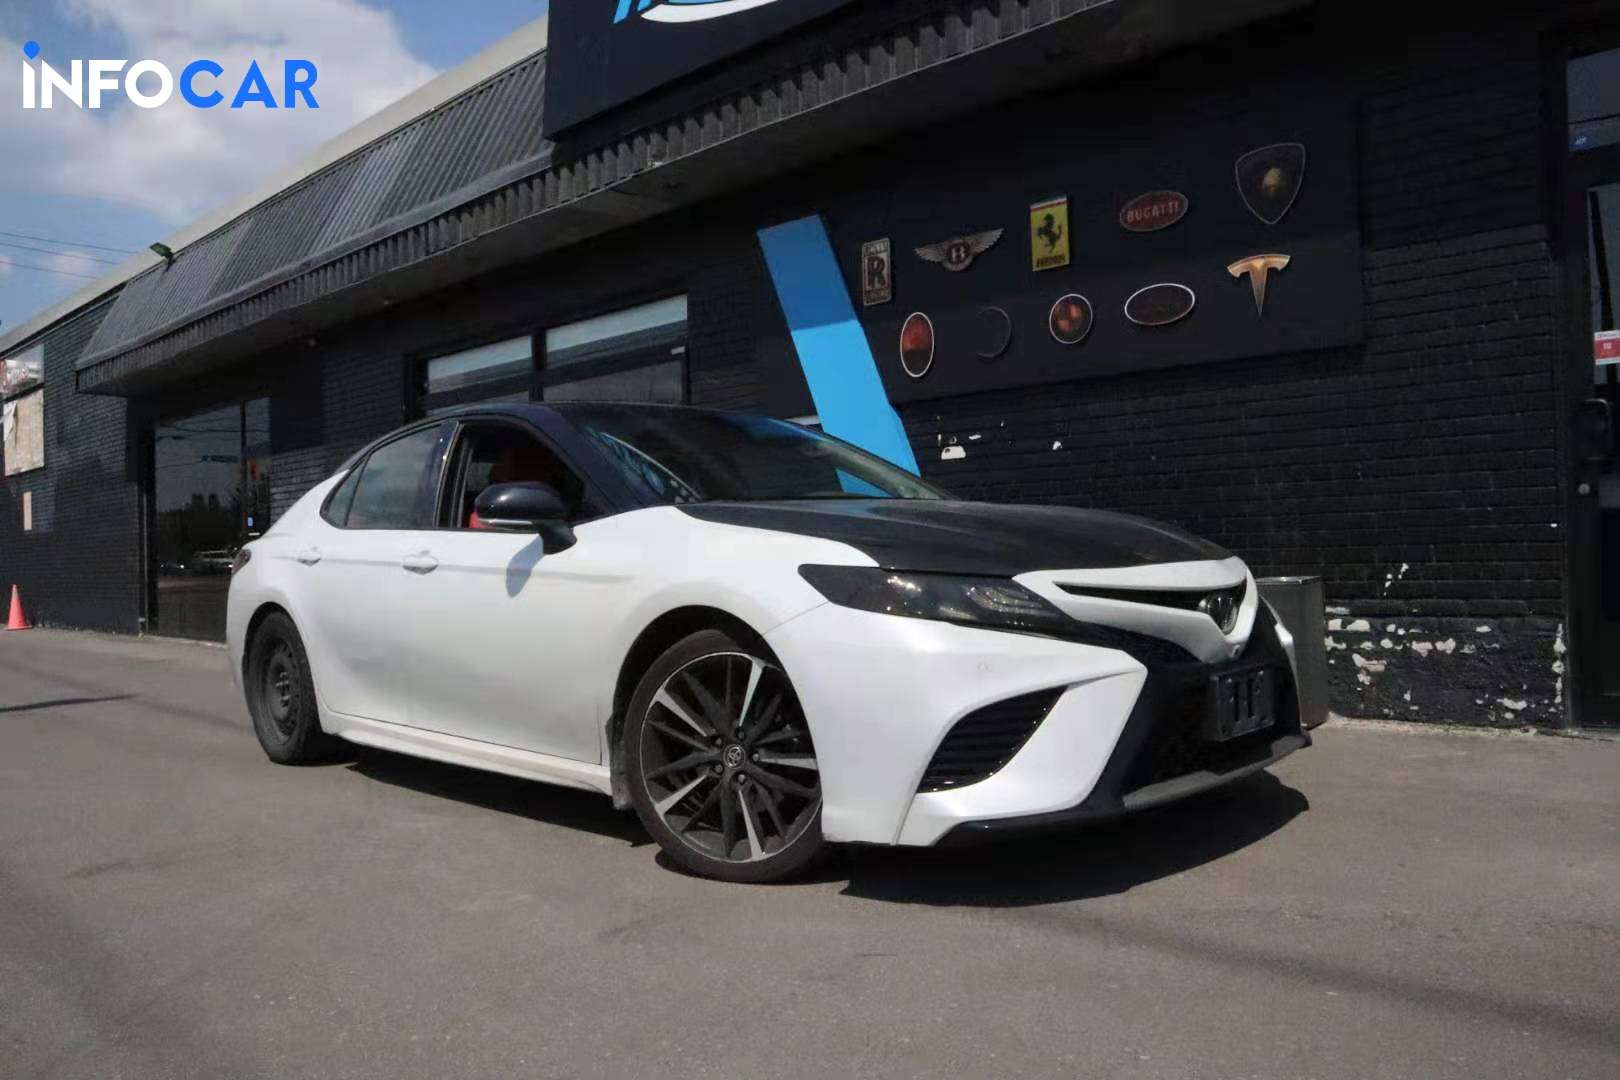 2018 Toyota Camry xse - INFOCAR - Toronto's Most Comprehensive New and Used Auto Trading Platform